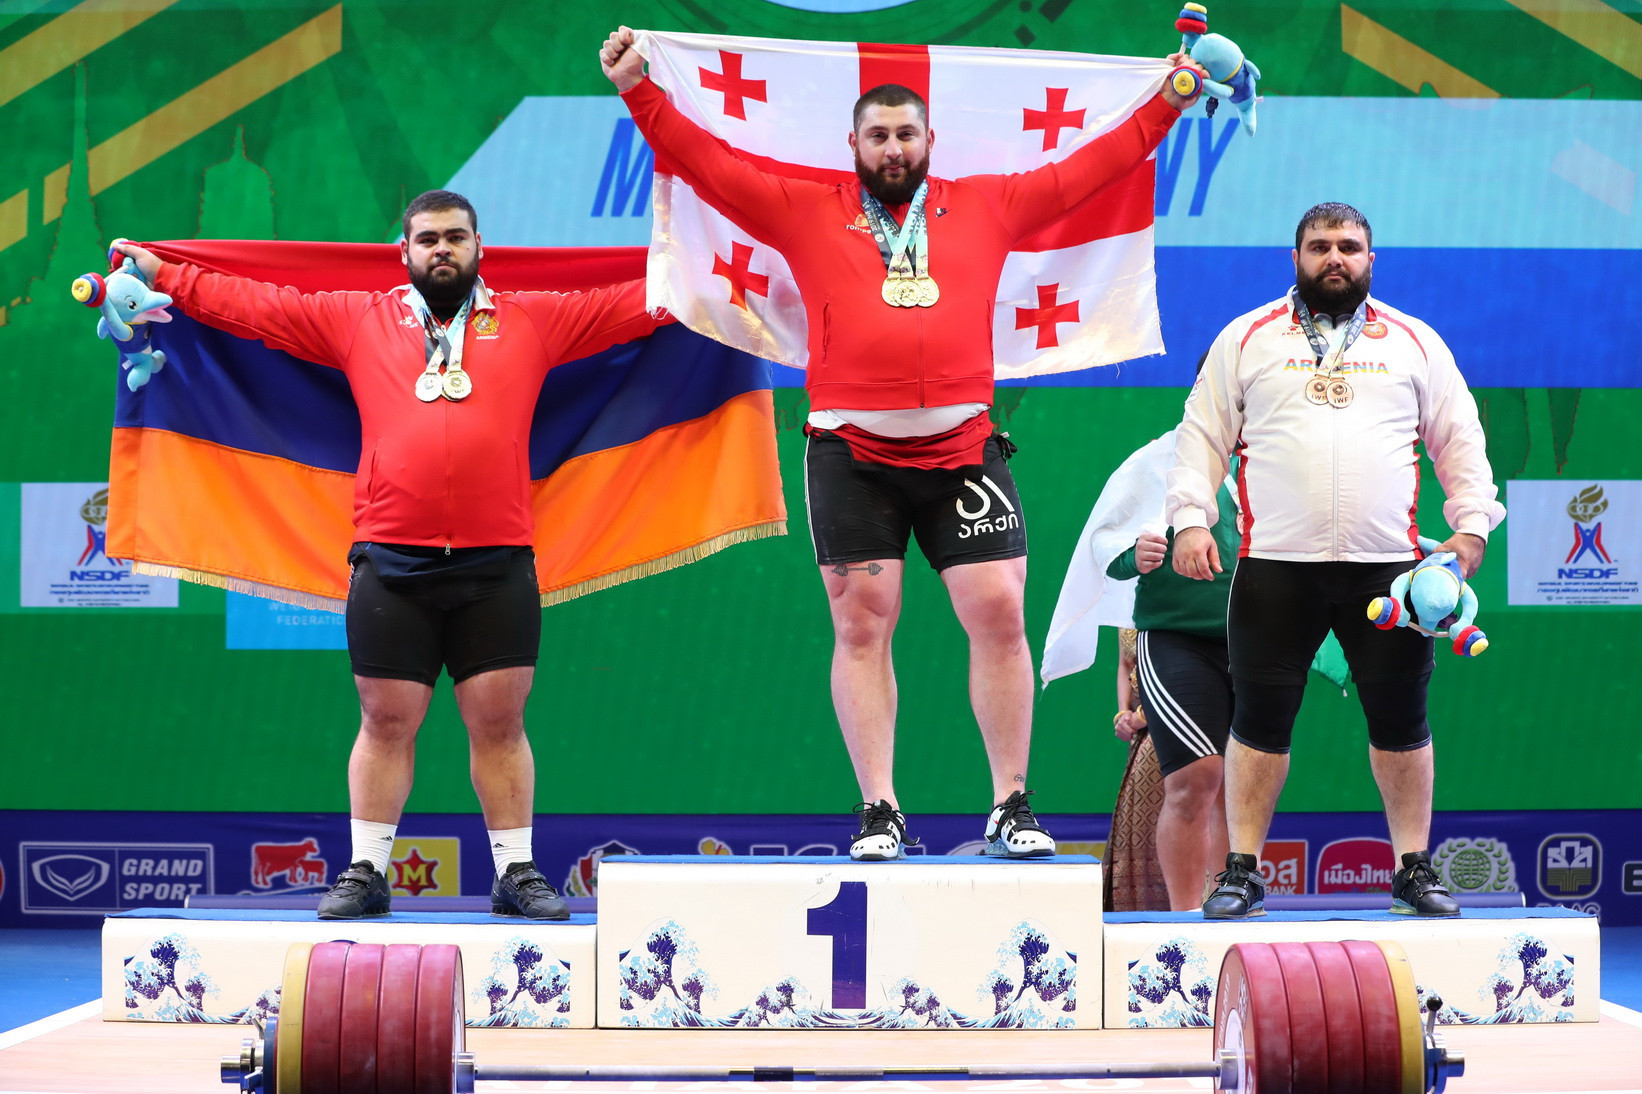 Georgia's Lasha Talakhadze defended his men's over-109 kilograms title in style on the last day of the International Weightlifting Federation World Championships in Thai city Pattaya ©IWF